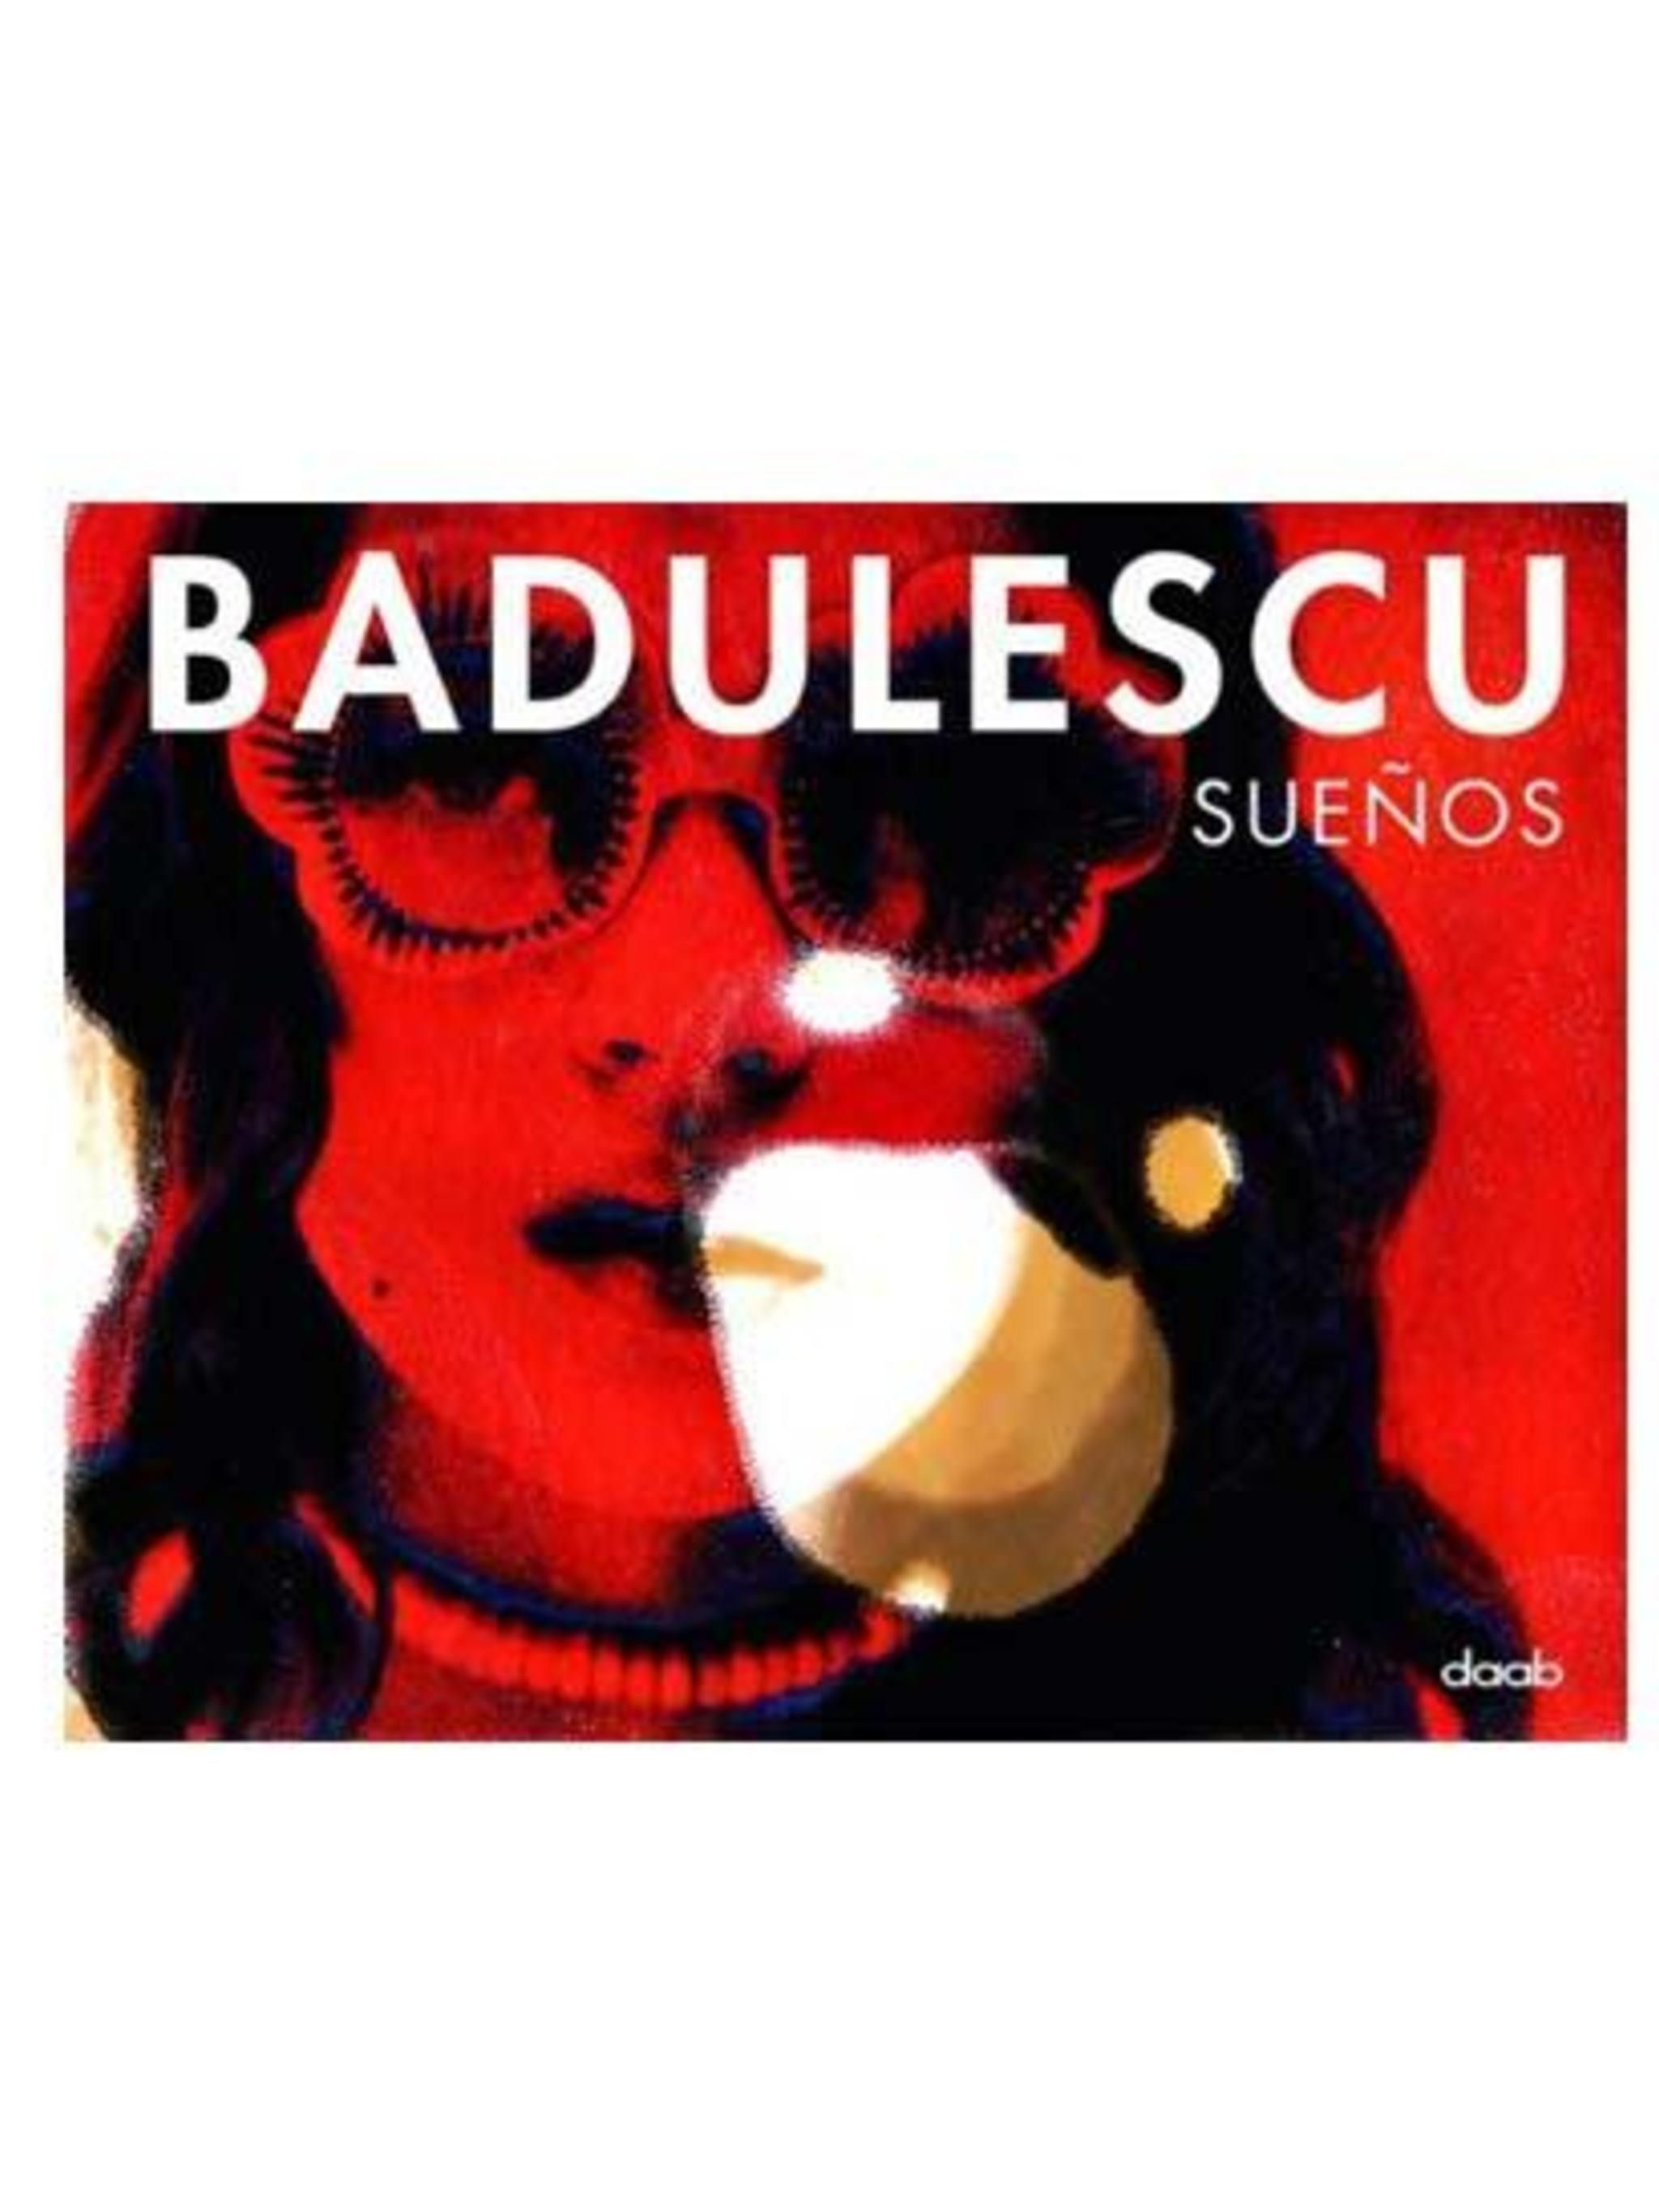 "<p>Fashion Photographer Enrique Badulescu released this beautiful book back in 2009. A favourite amongst the editors for inspiration- <a href=""http://www.amazon.co.uk/Badulescu-Enrique/dp/3866540337/ref=sr_1_1?ie=UTF8&amp&#x3B;qid=1392044301&amp&#x3B;sr=8-1&amp&#x3B;key"